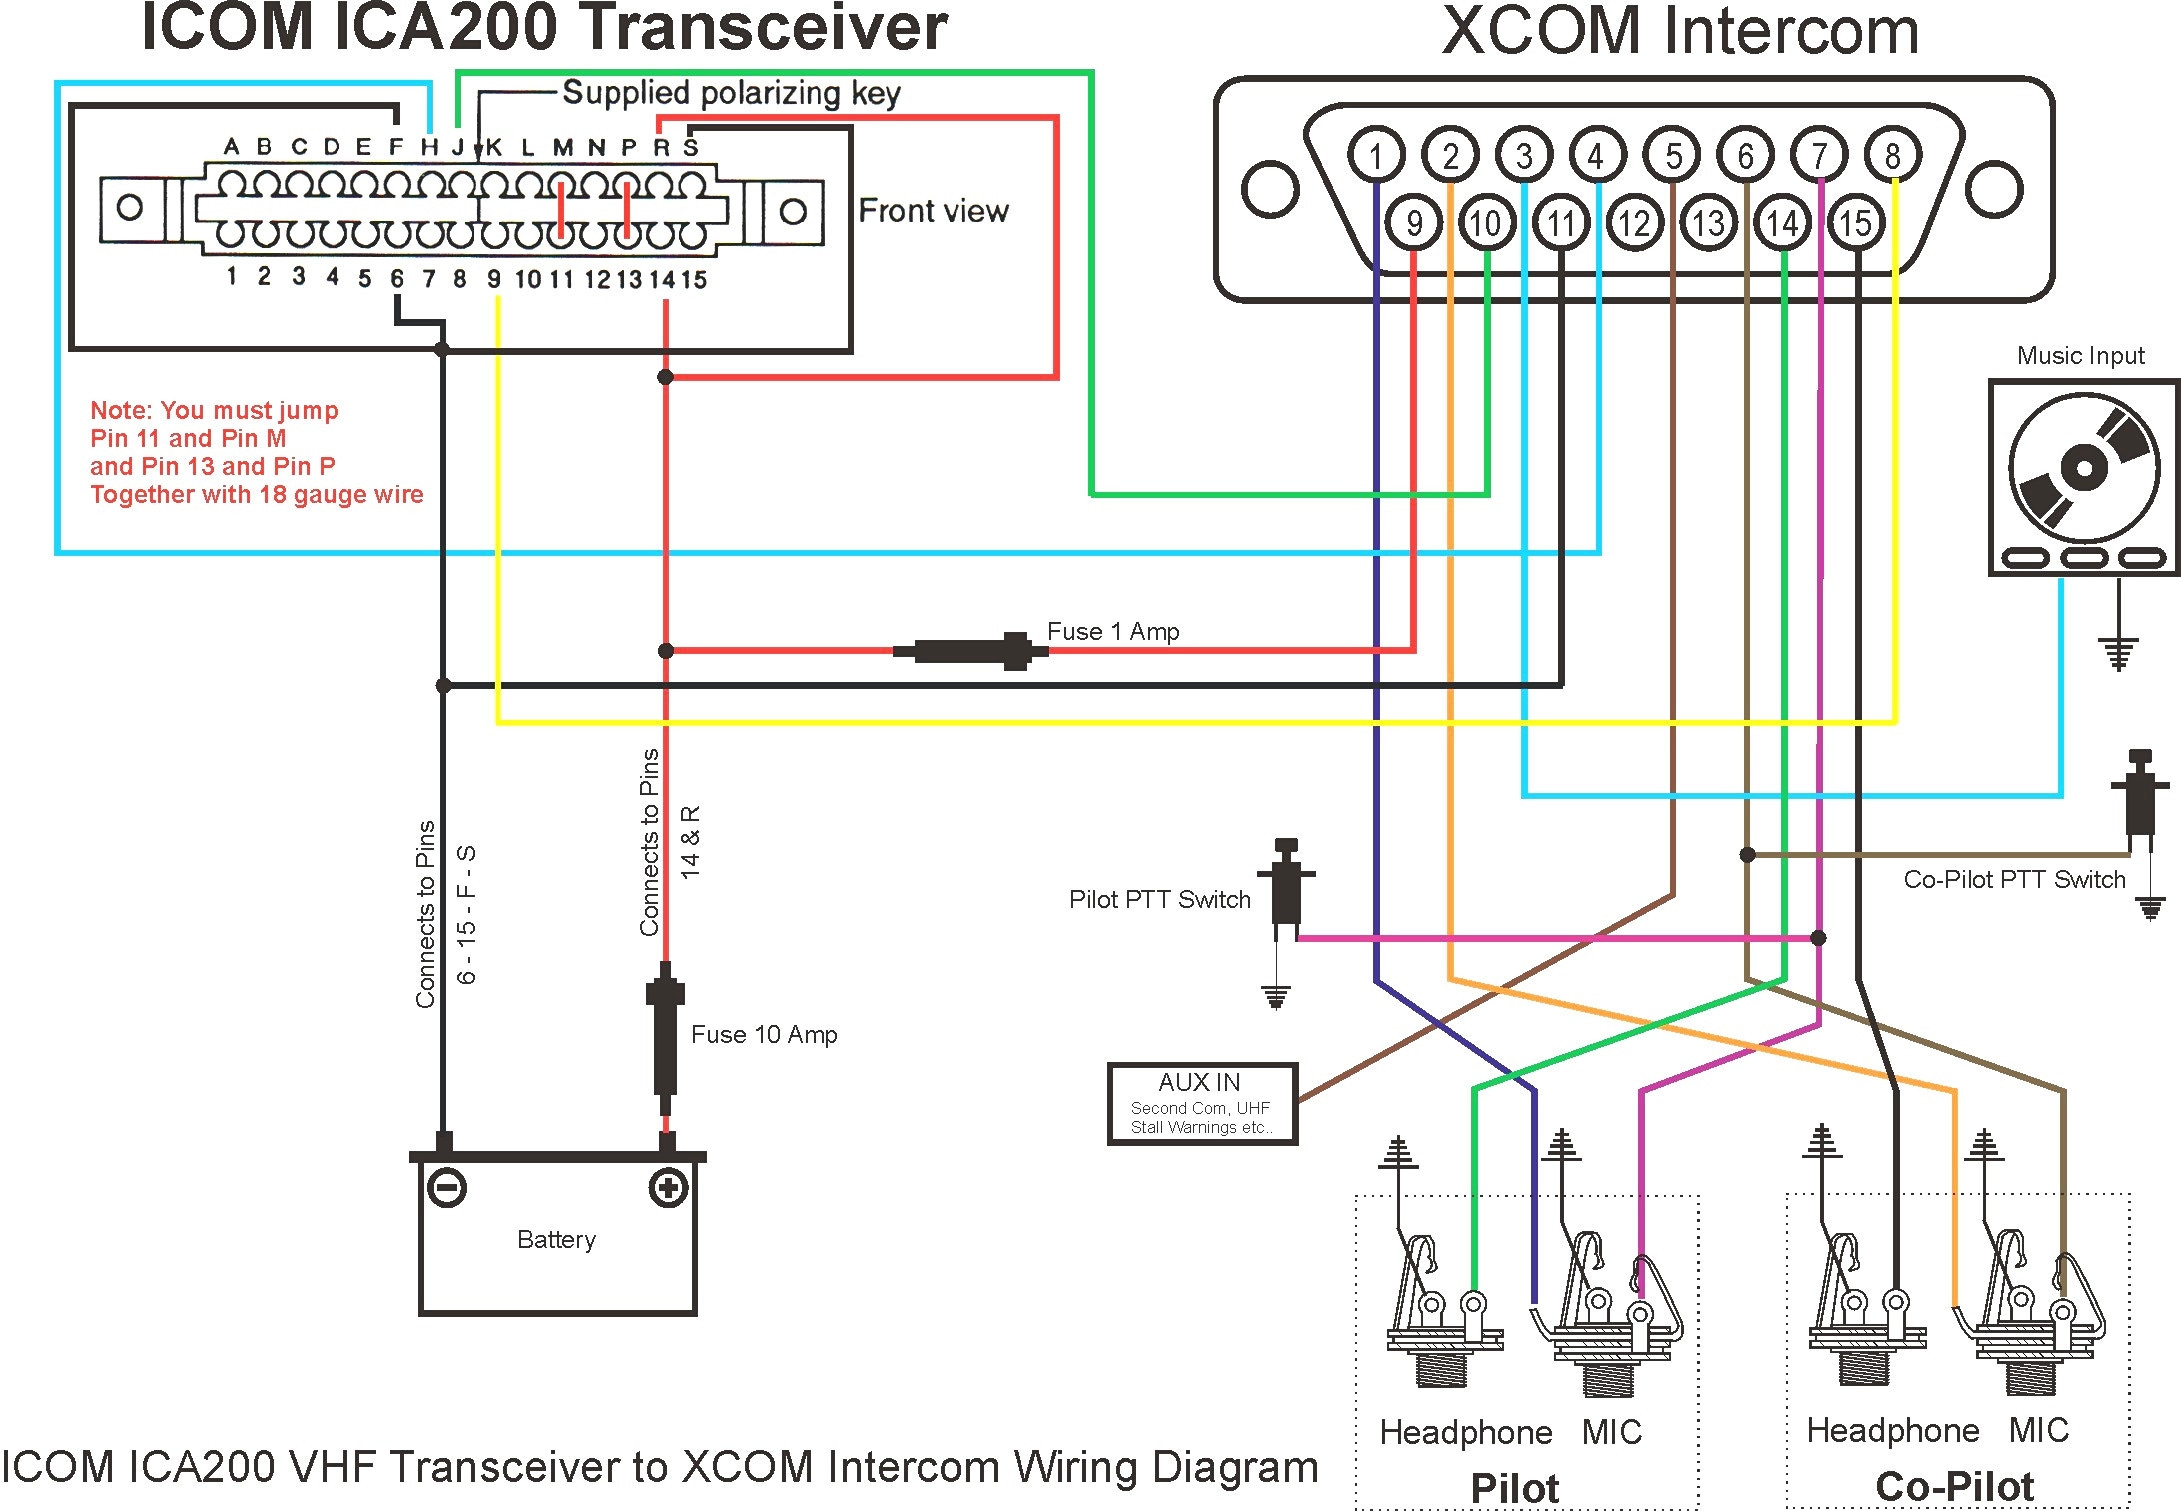 push to talk switch wiring diagram Download-push to talk switch wiring diagram wire center u2022 rh 107 191 48 154 PTT Foot 15-l